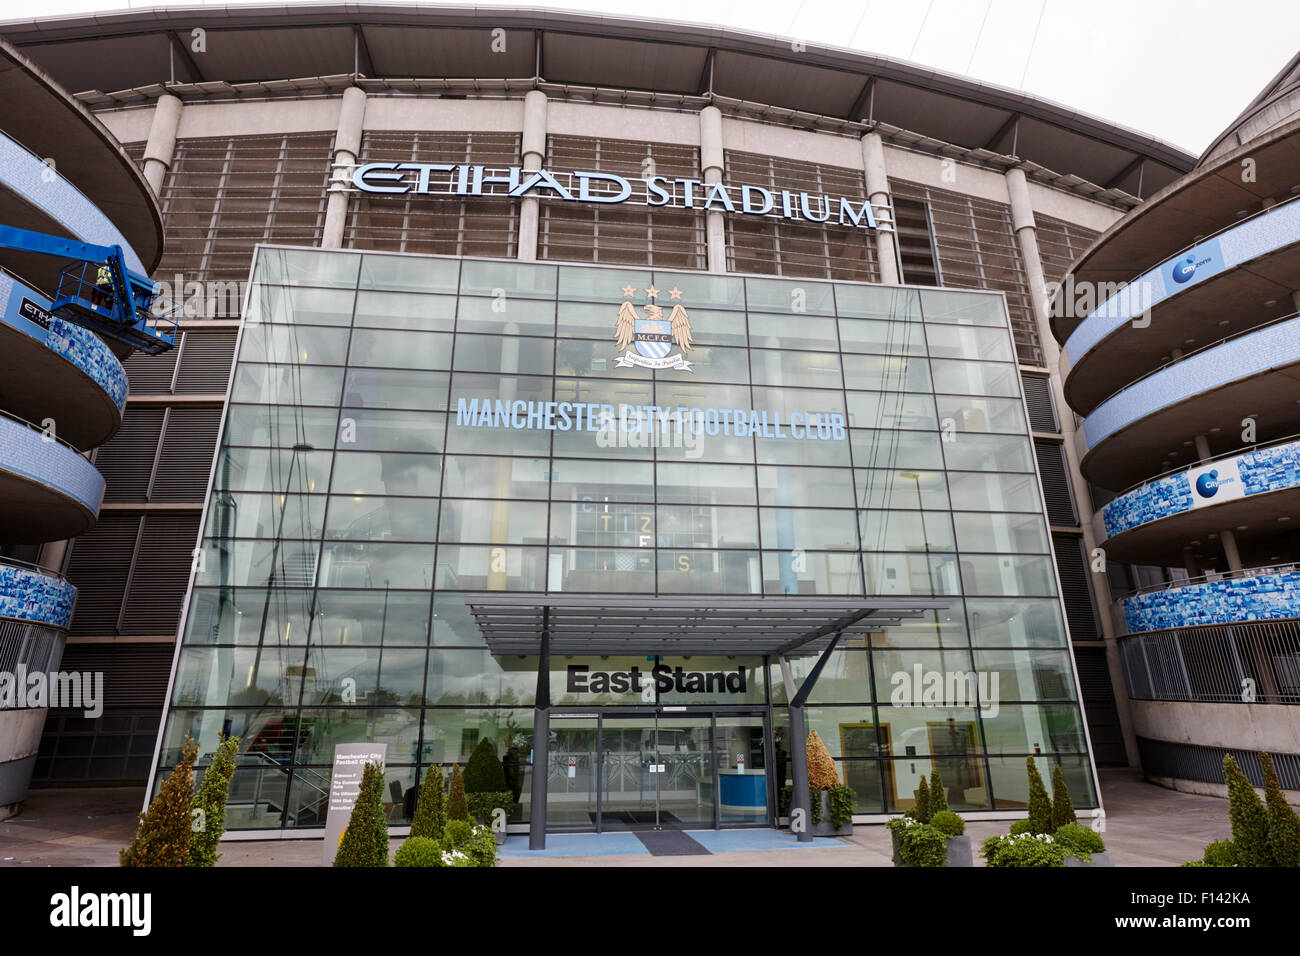 east stand Manchester City etihad stadium eastlands city of manchester stadiium uk - Stock Image